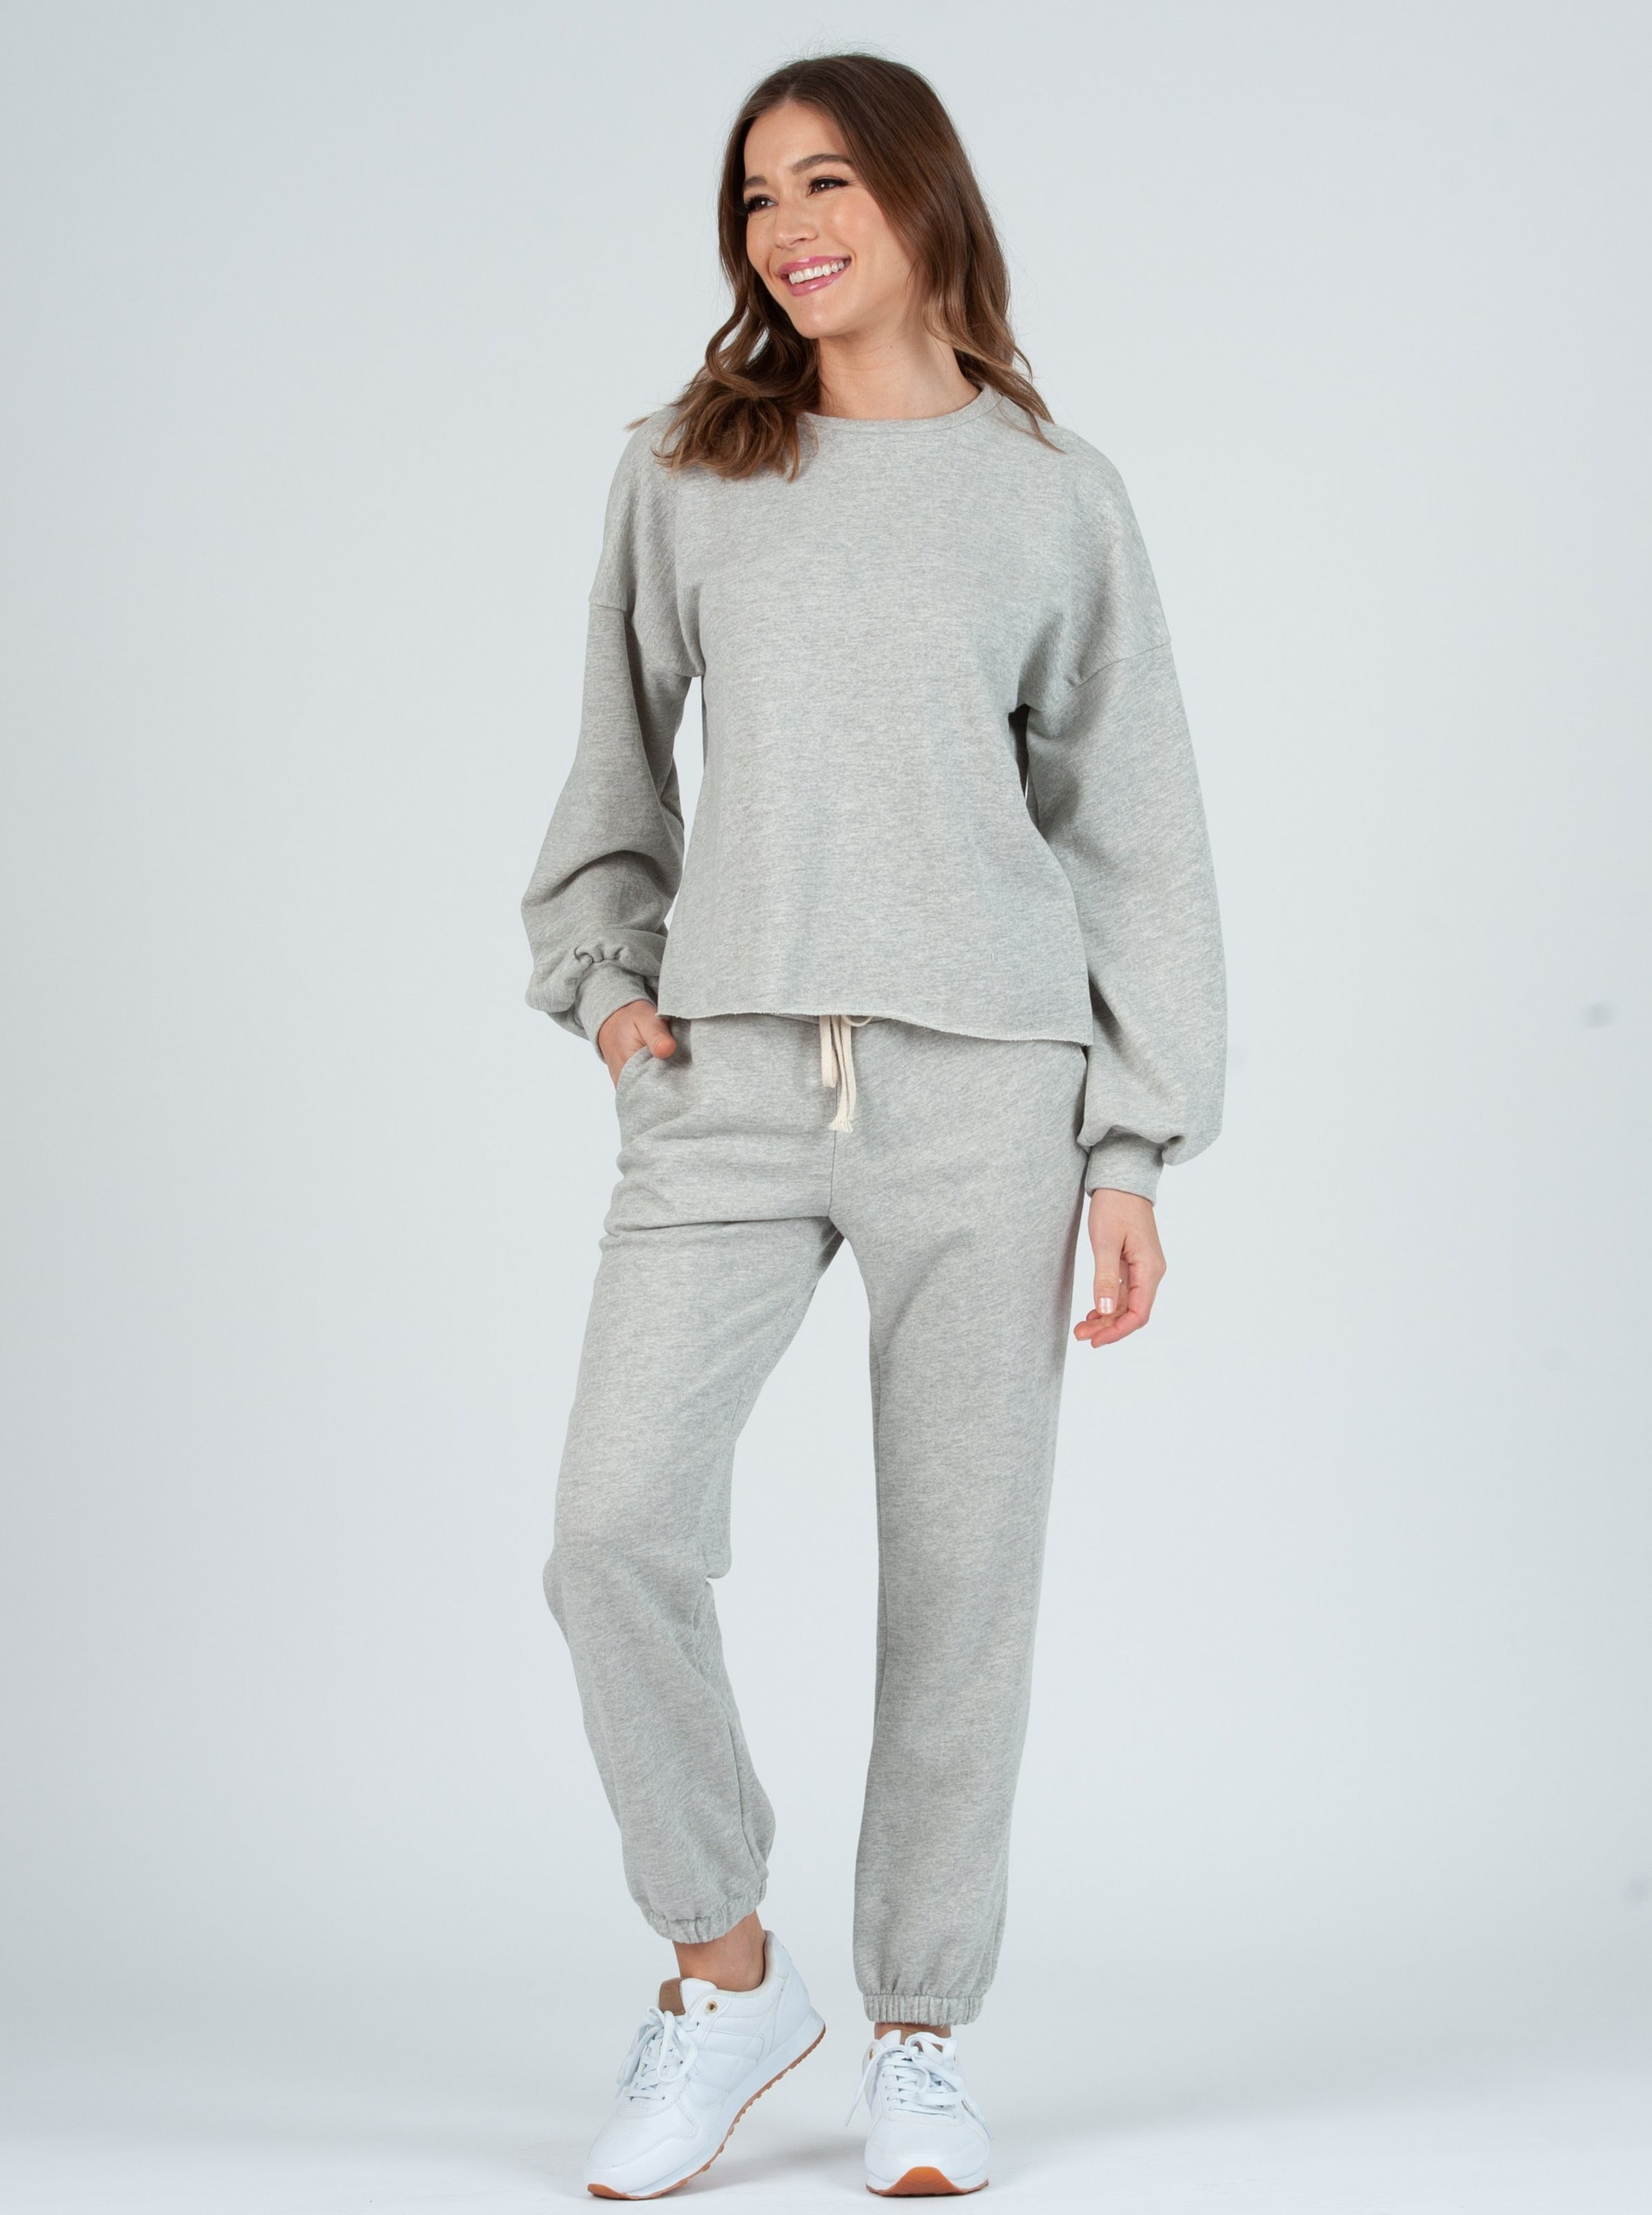 FAYE HEATHER GRAY FRENCH TERRY SWEATSHIRT & PANT SET